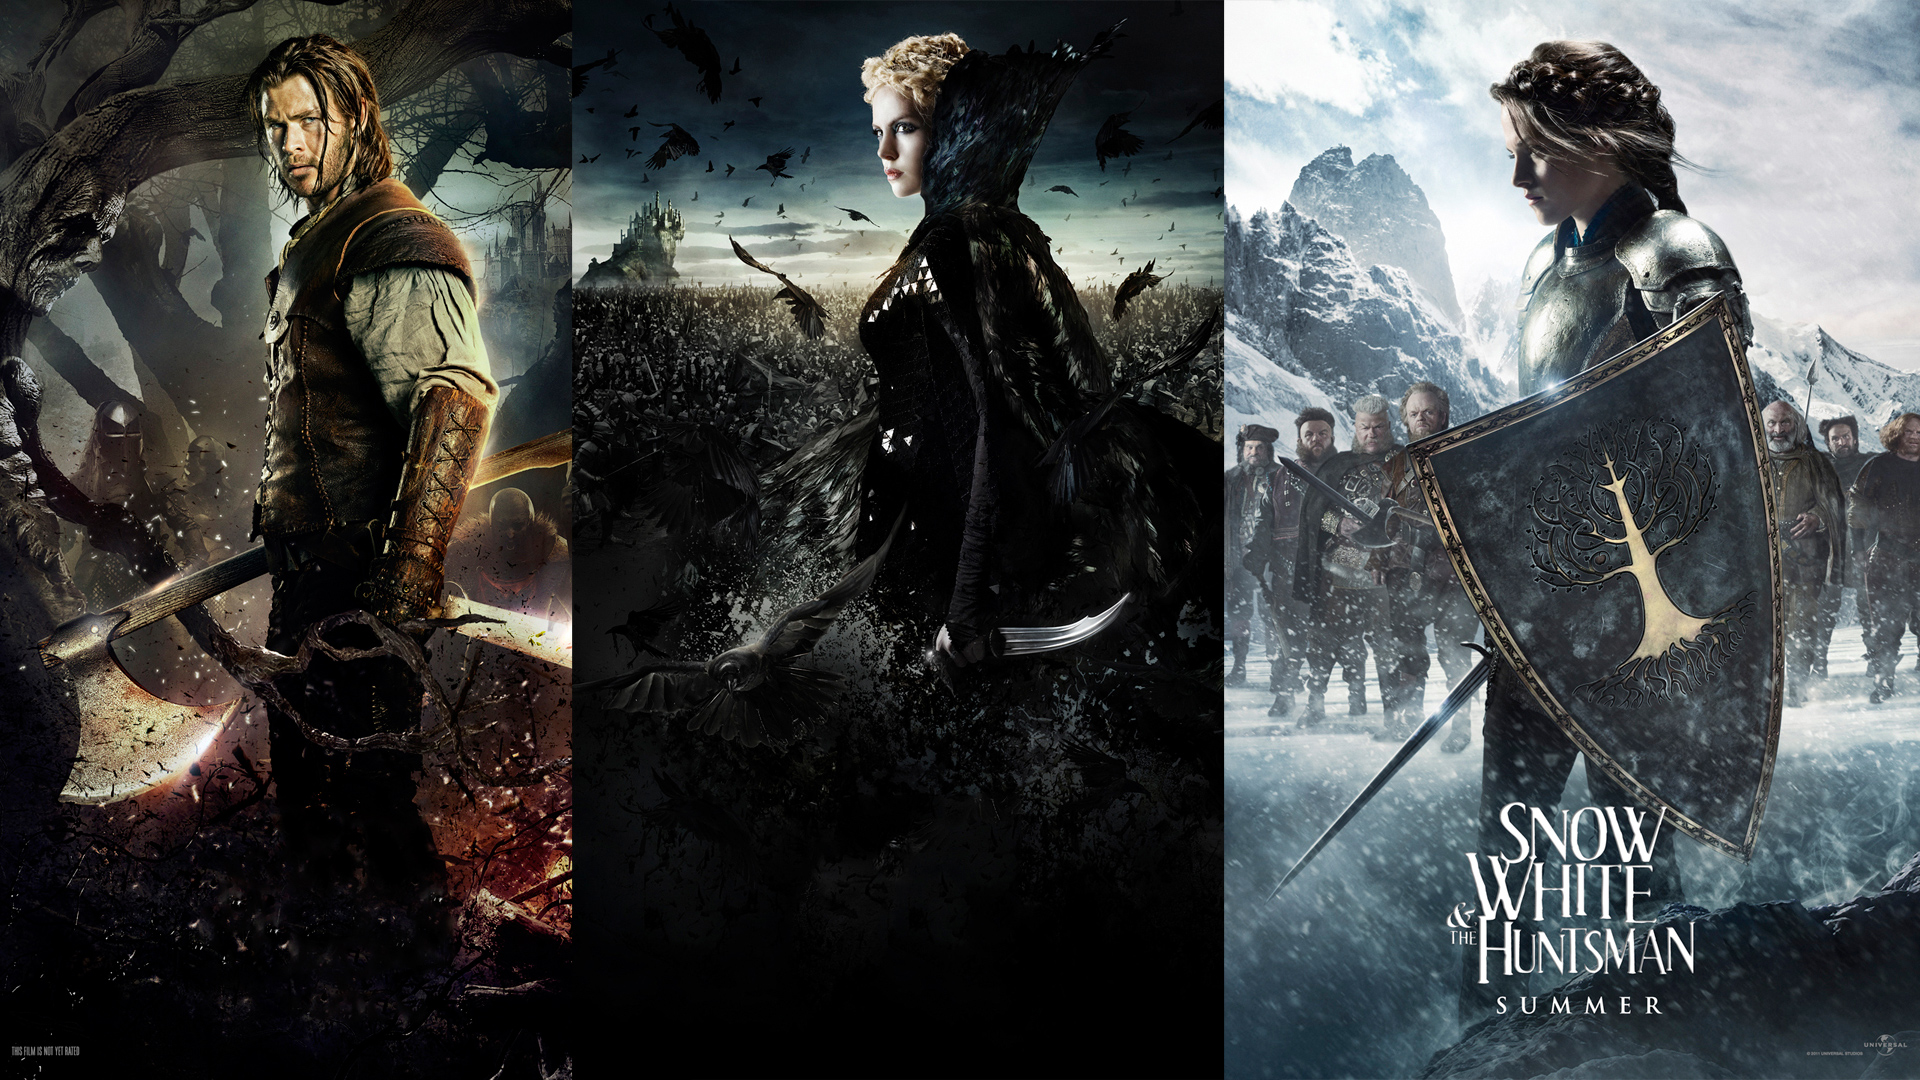 Snow White and the Huntsman 2012 3273.05 Kb